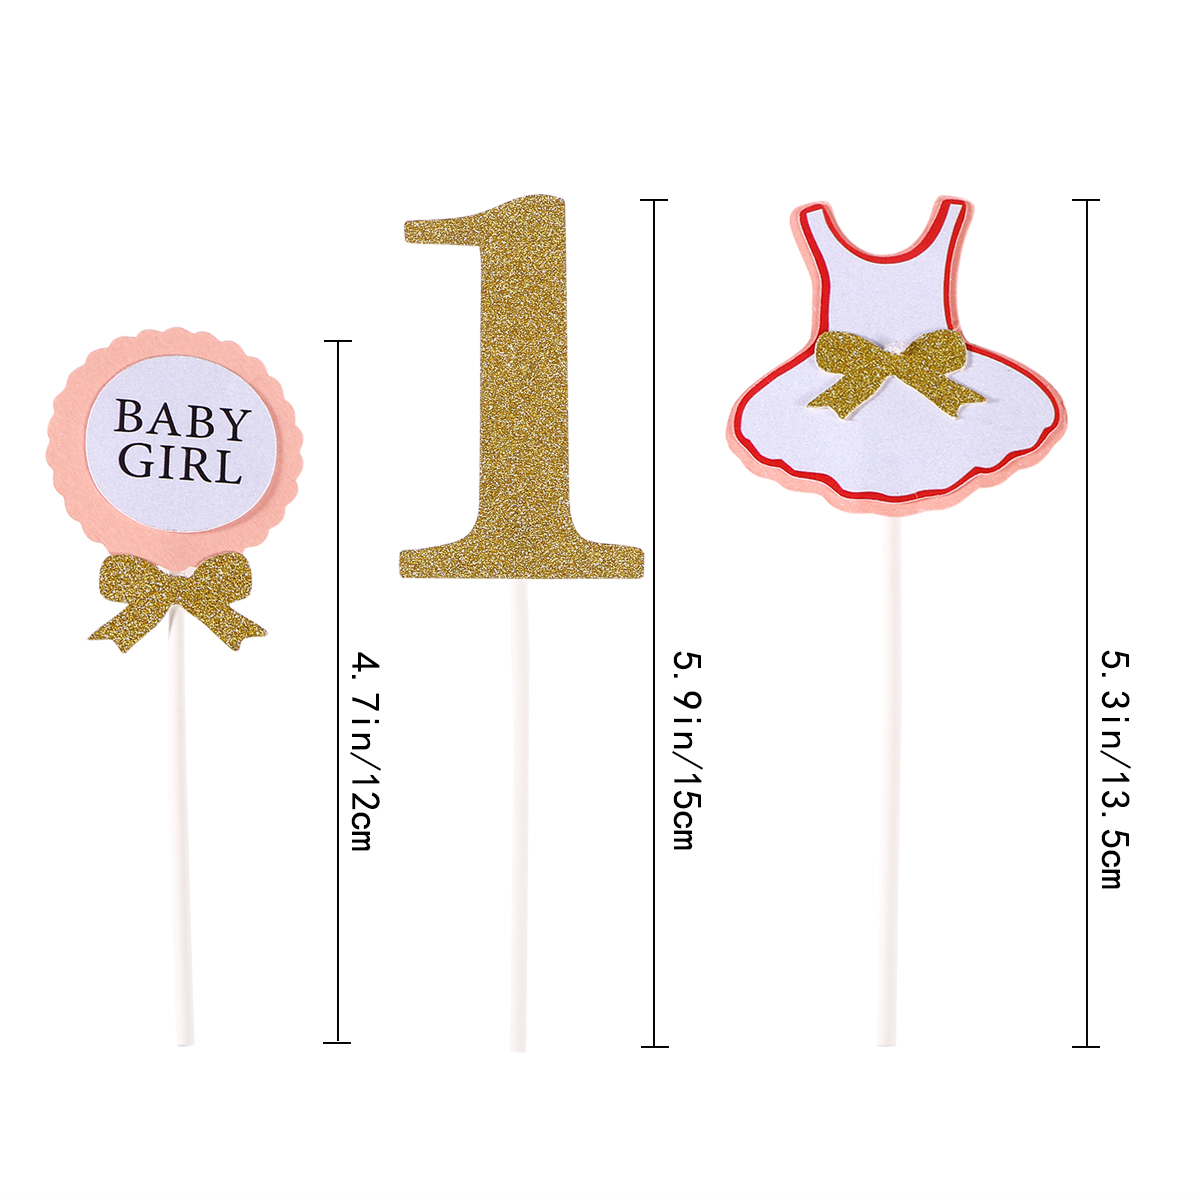 3 Pcs Cake Topper Flag Baby Boy Girl 1 Year Old Age Happy Birthday For Party Decoration In Decorating Supplies From Home Garden On